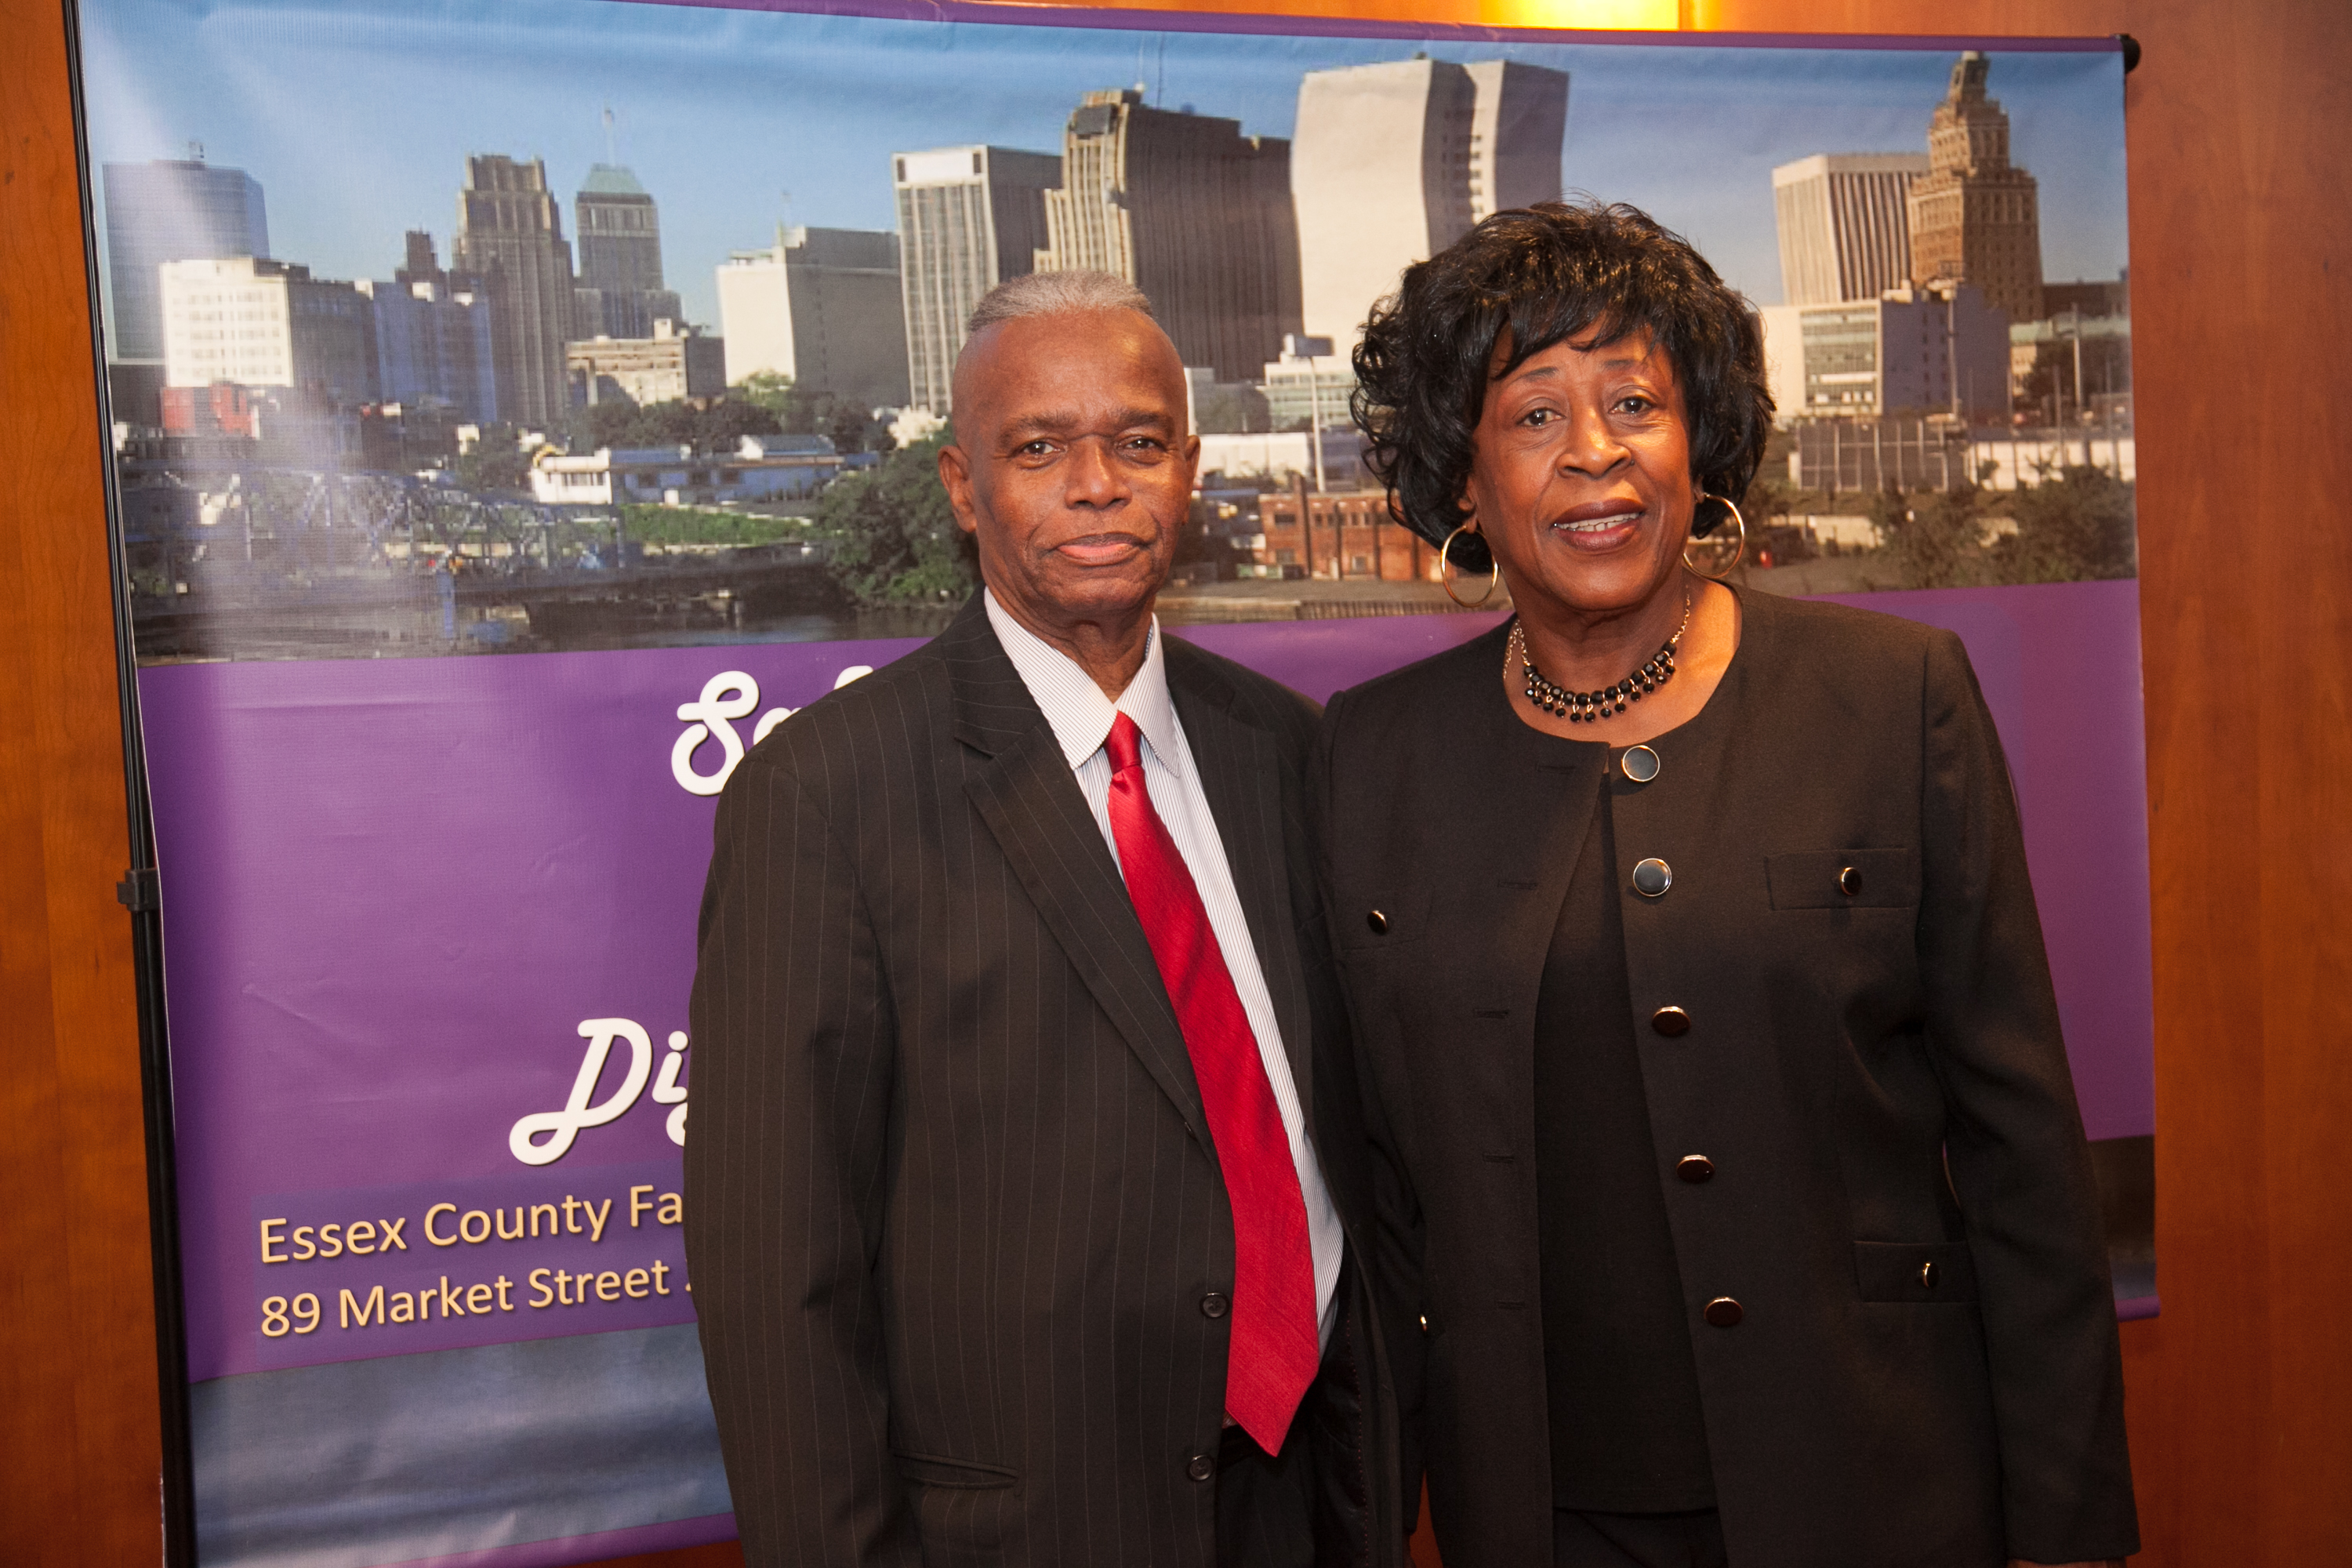 Freeholder Jones + Commisioner WAlter Jacobs -Senior Services Advisory Council